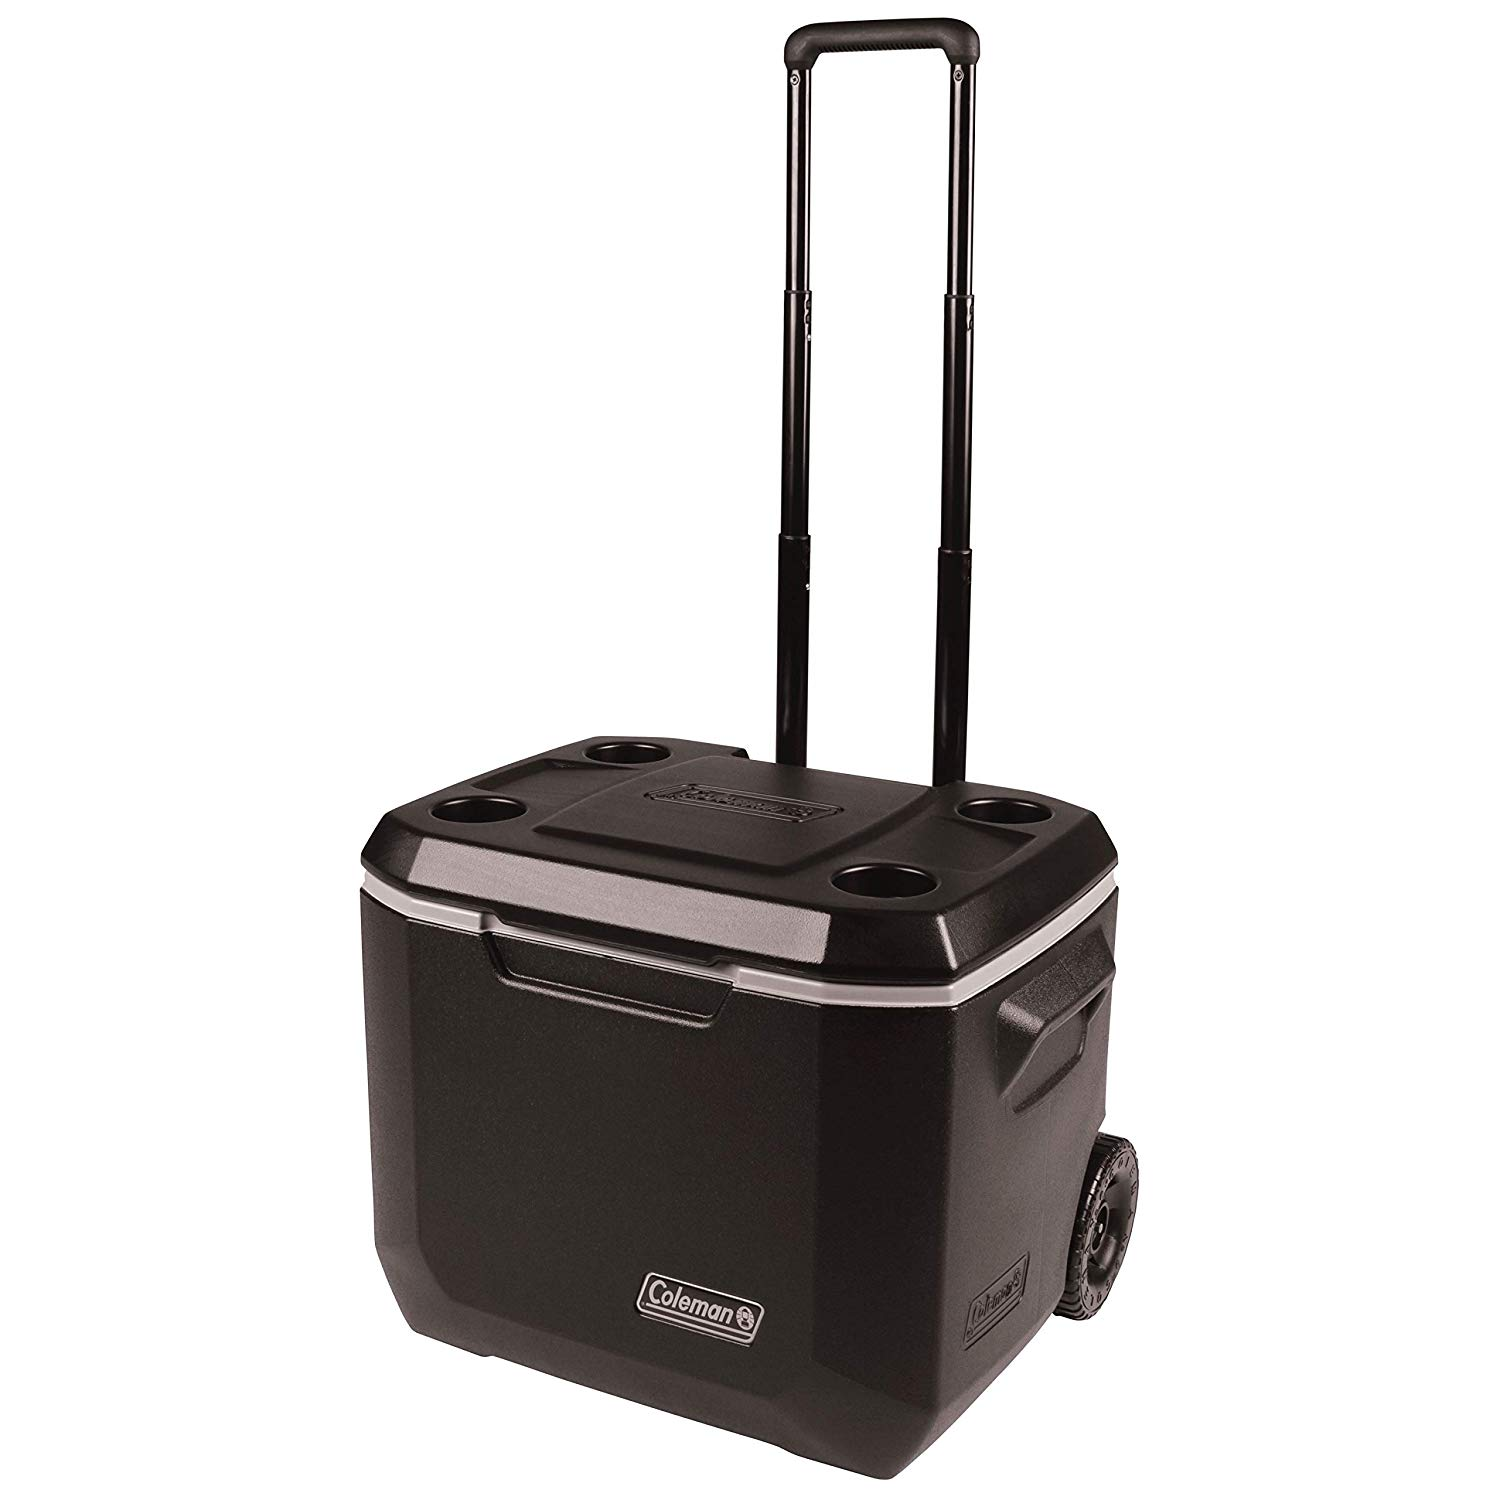 Coleman roller cooler for camping and beach